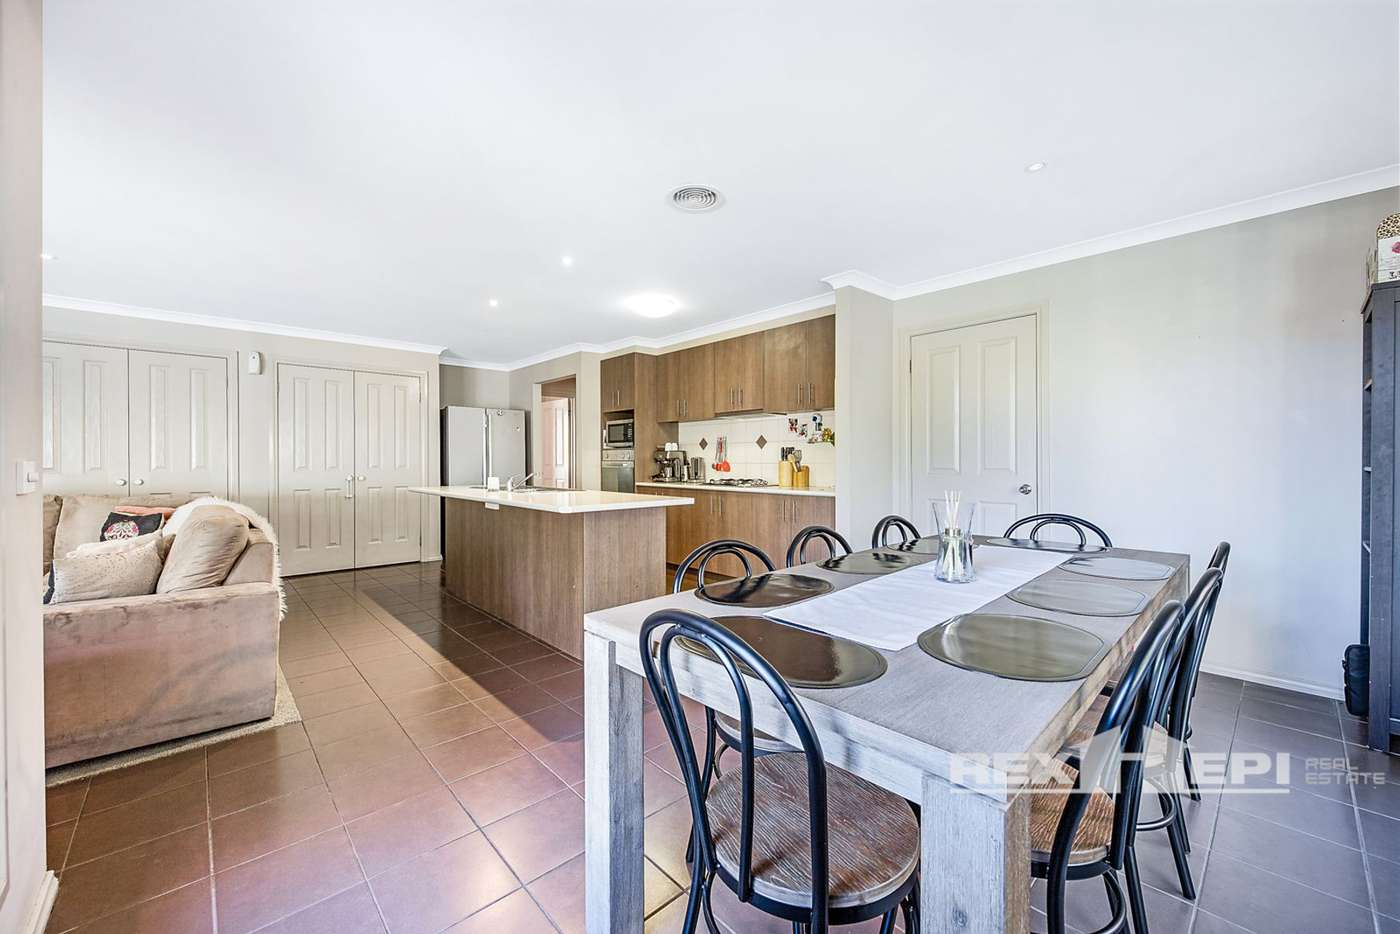 Fifth view of Homely house listing, 51 Tipperary Circuit, Pakenham VIC 3810